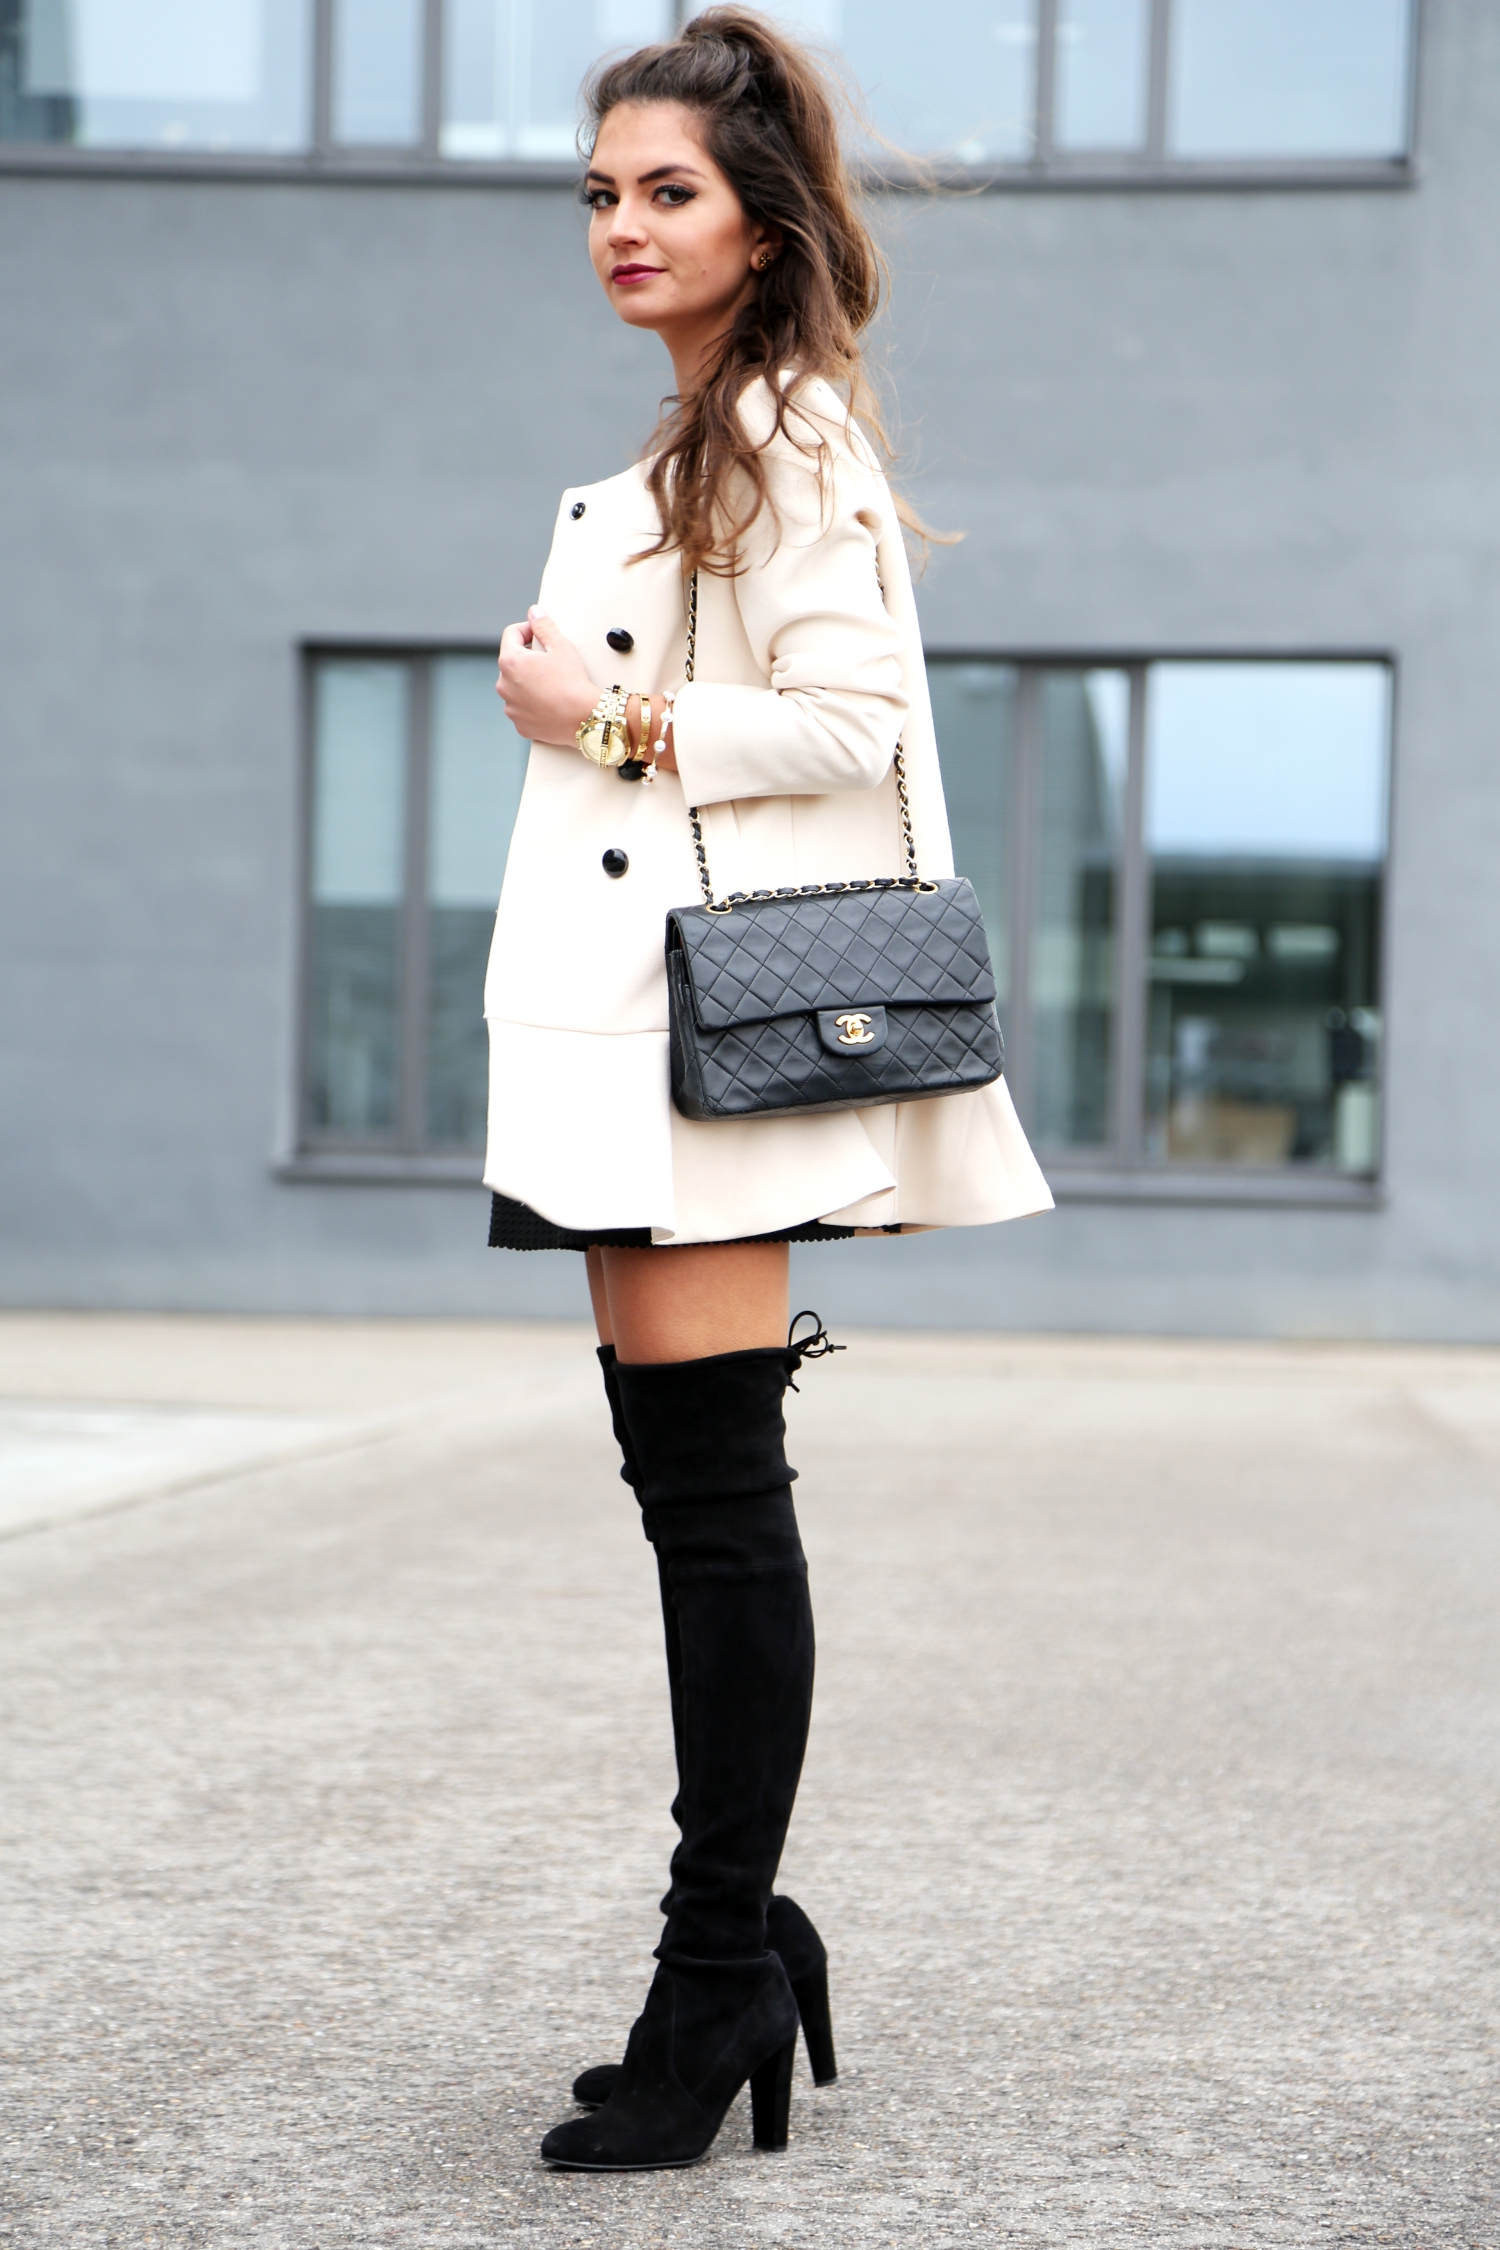 outfit-fashionhippieloves-spring-look-overknees-stuart-weitzman-chanel-bag